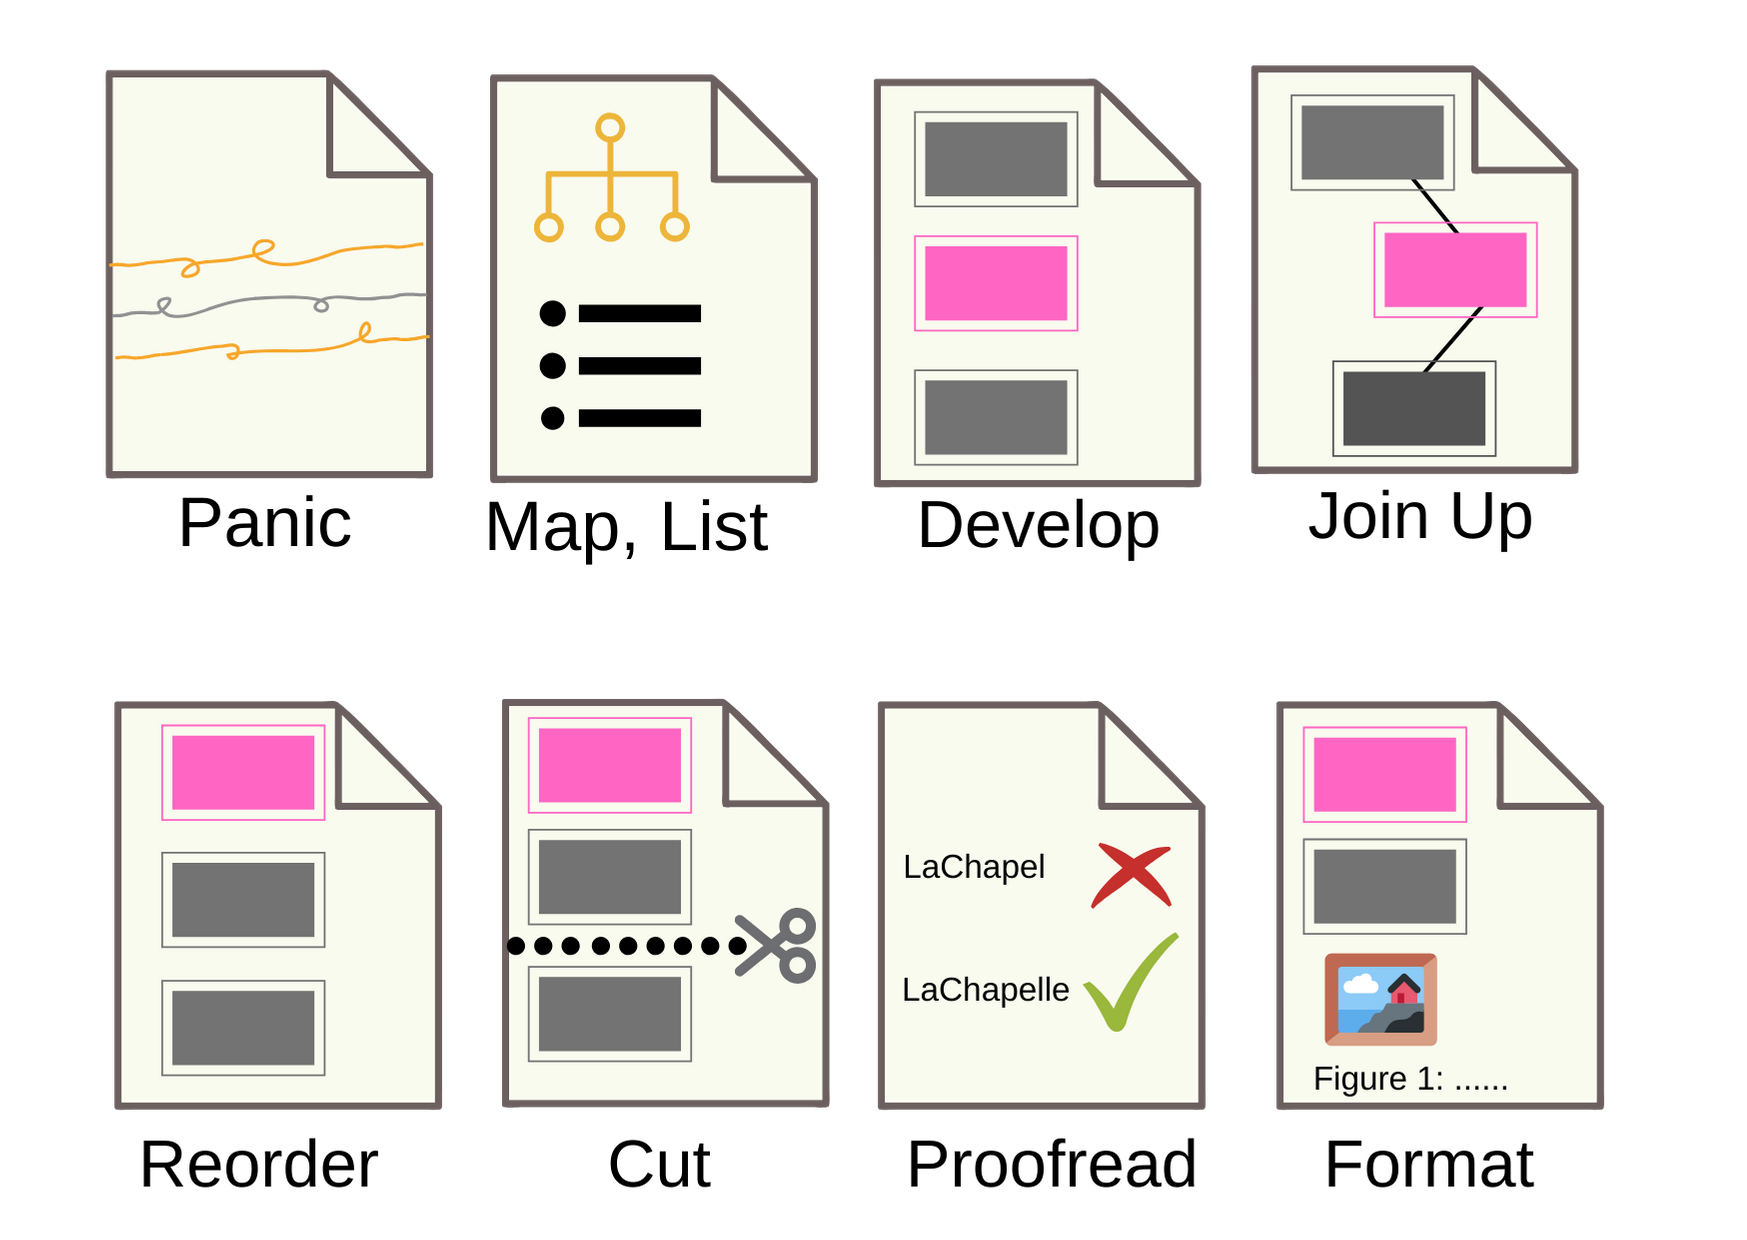 Diagram to show stages of writing: panic, map/list, develop, join up, reorder, cut, proofread, format.